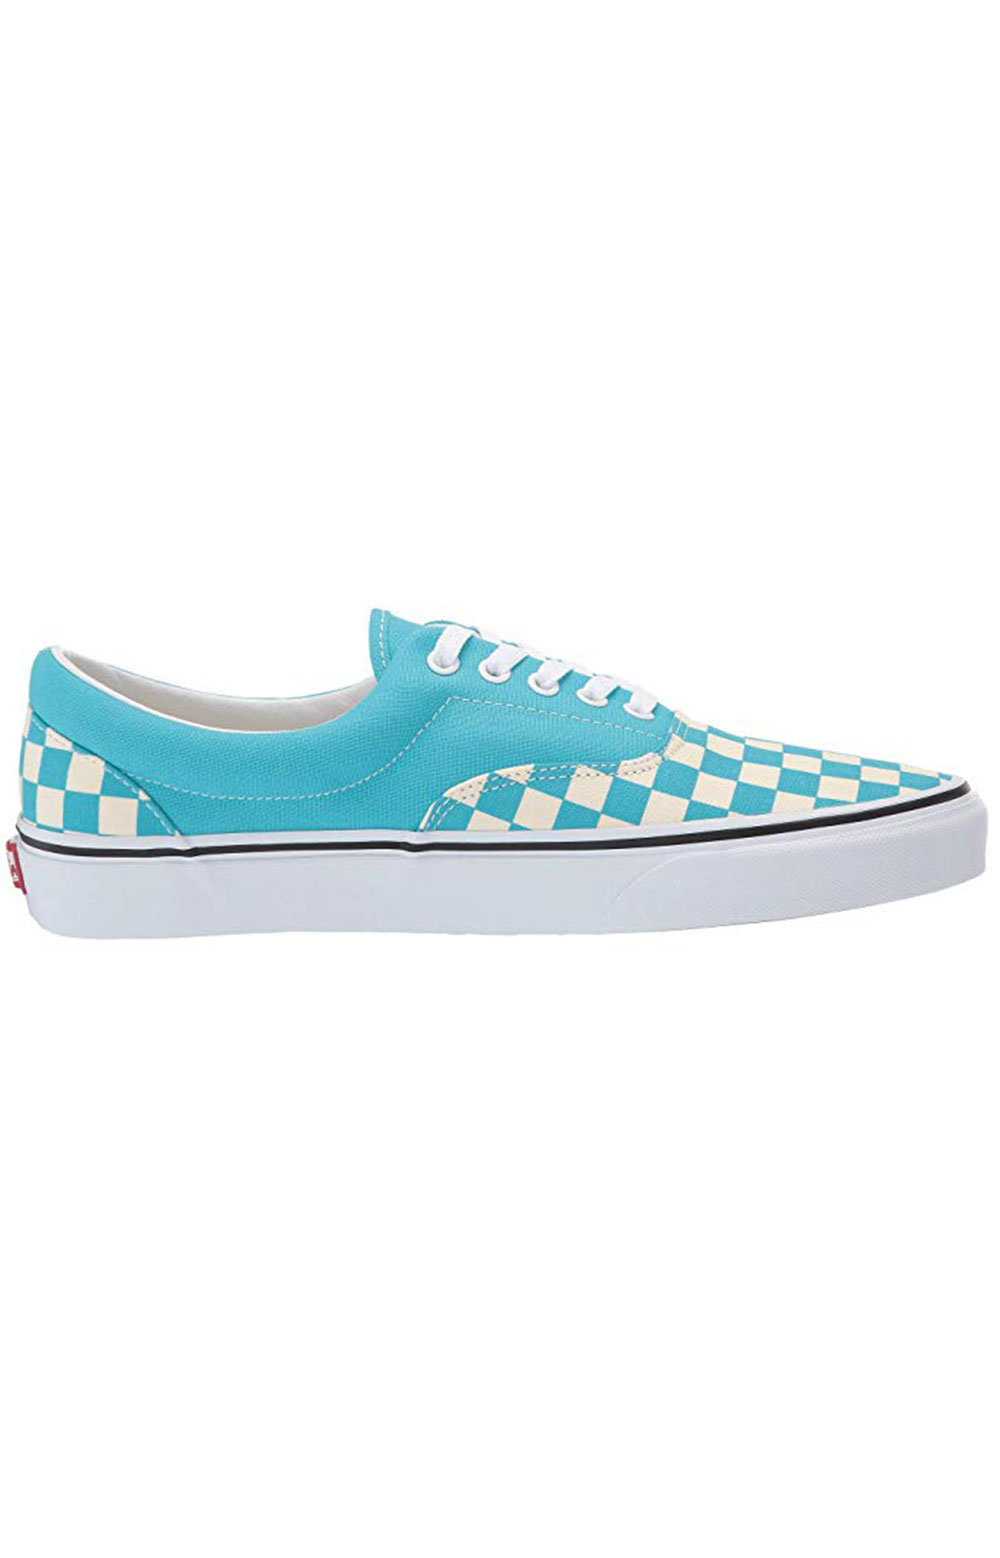 (8FRVOW) Checkerboard Era Shoe - Scuba Blue